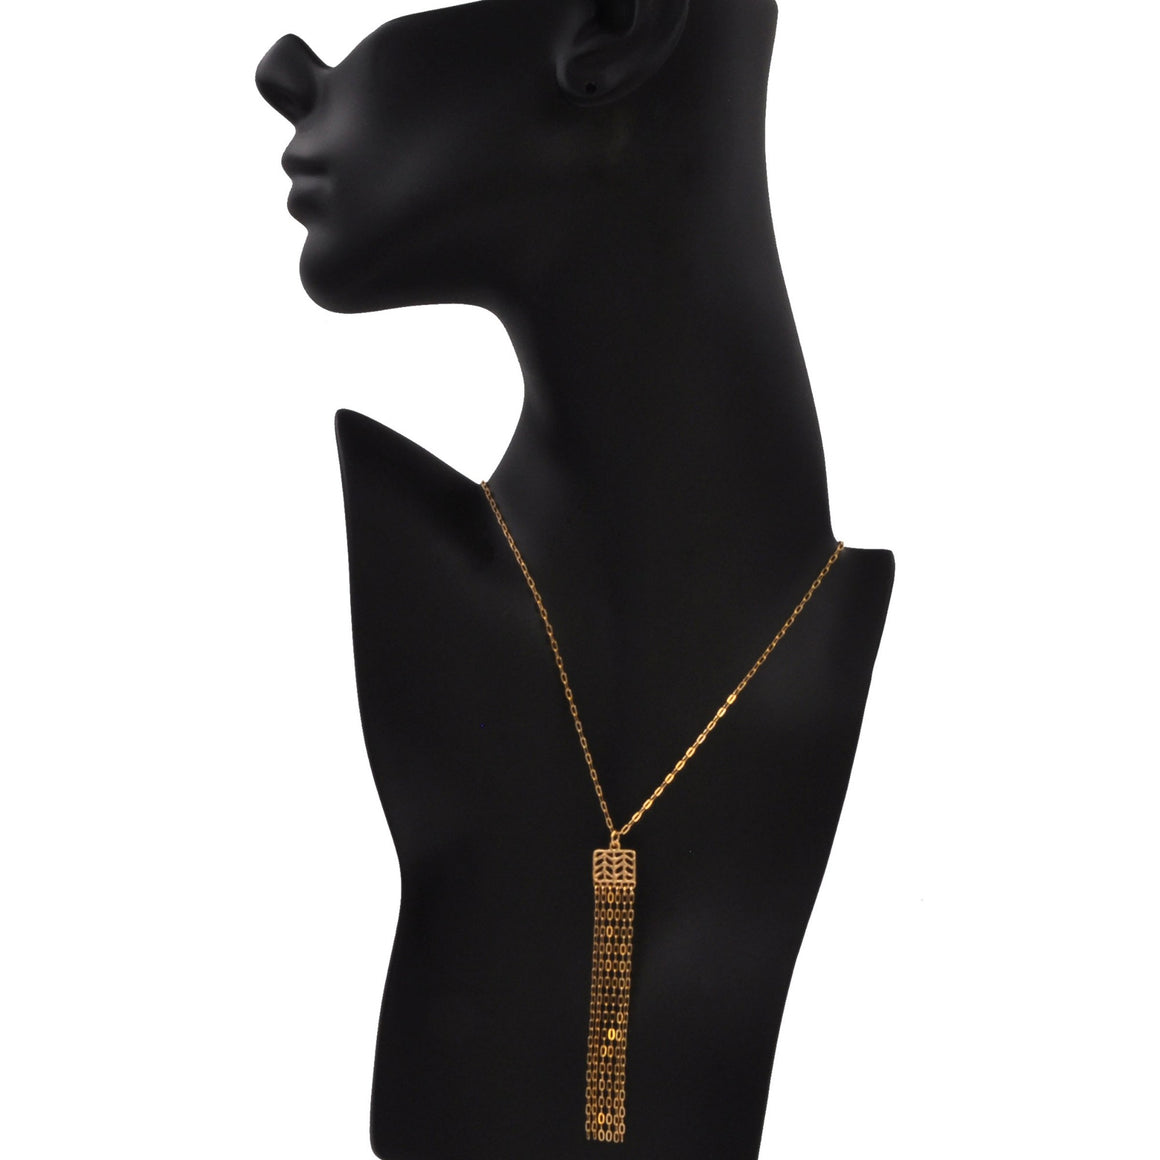 Glamorous Fringe Chevron Leaf Necklace - 24K Gold Plated